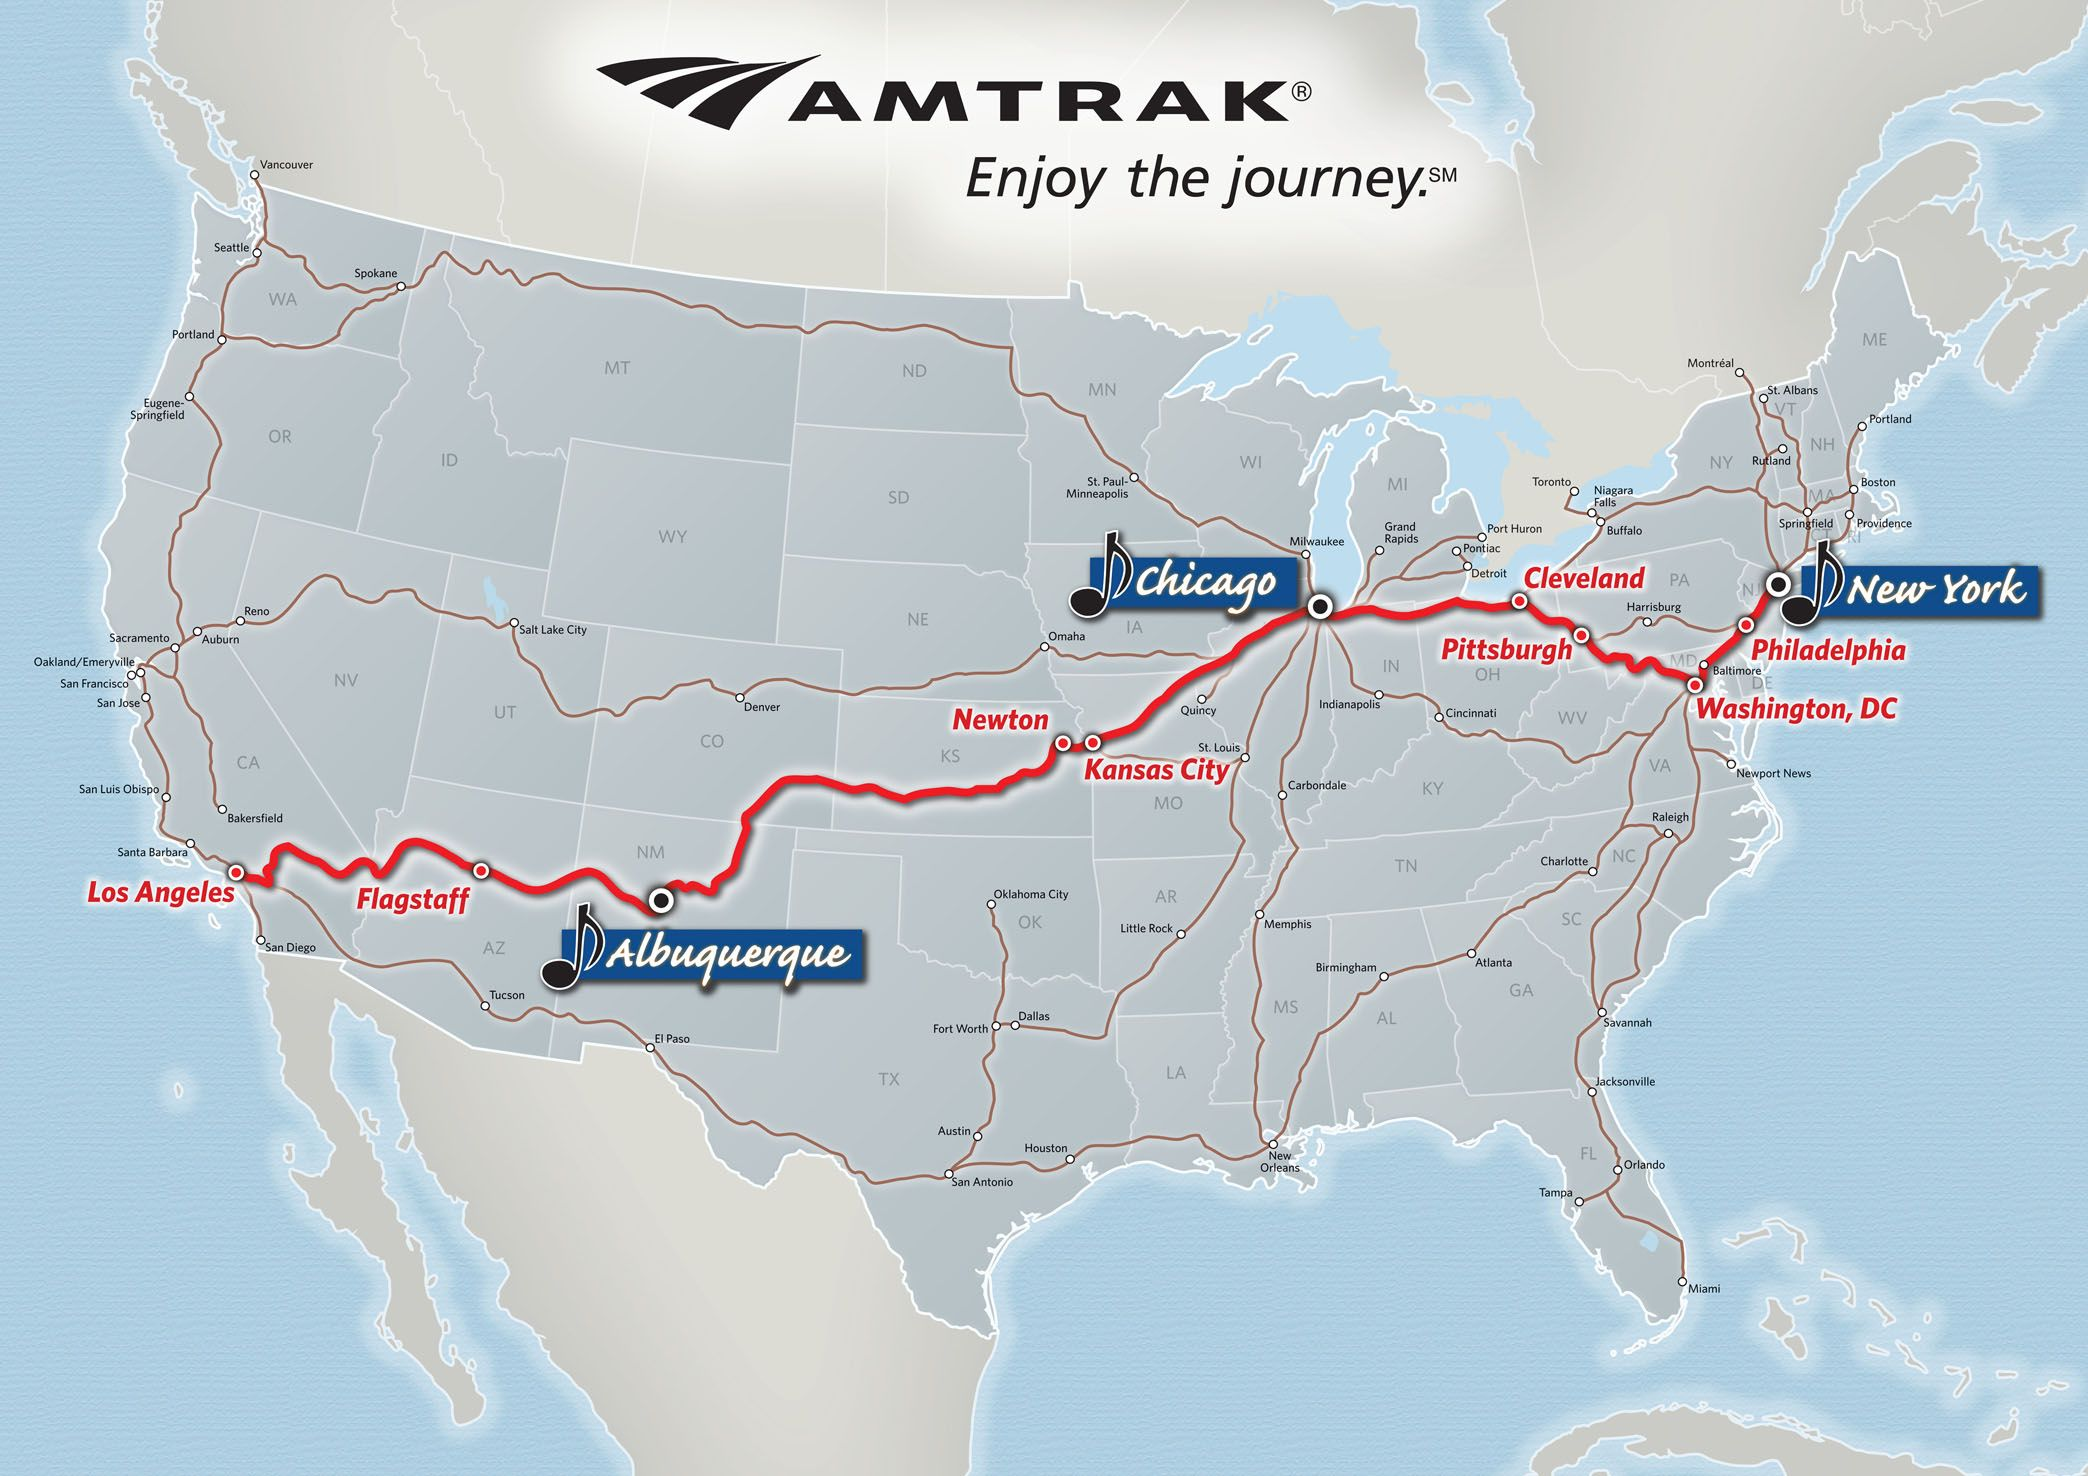 Map Of California Zephyr Route.Image Result For Map Amtrak California Zephyr Amtrak California